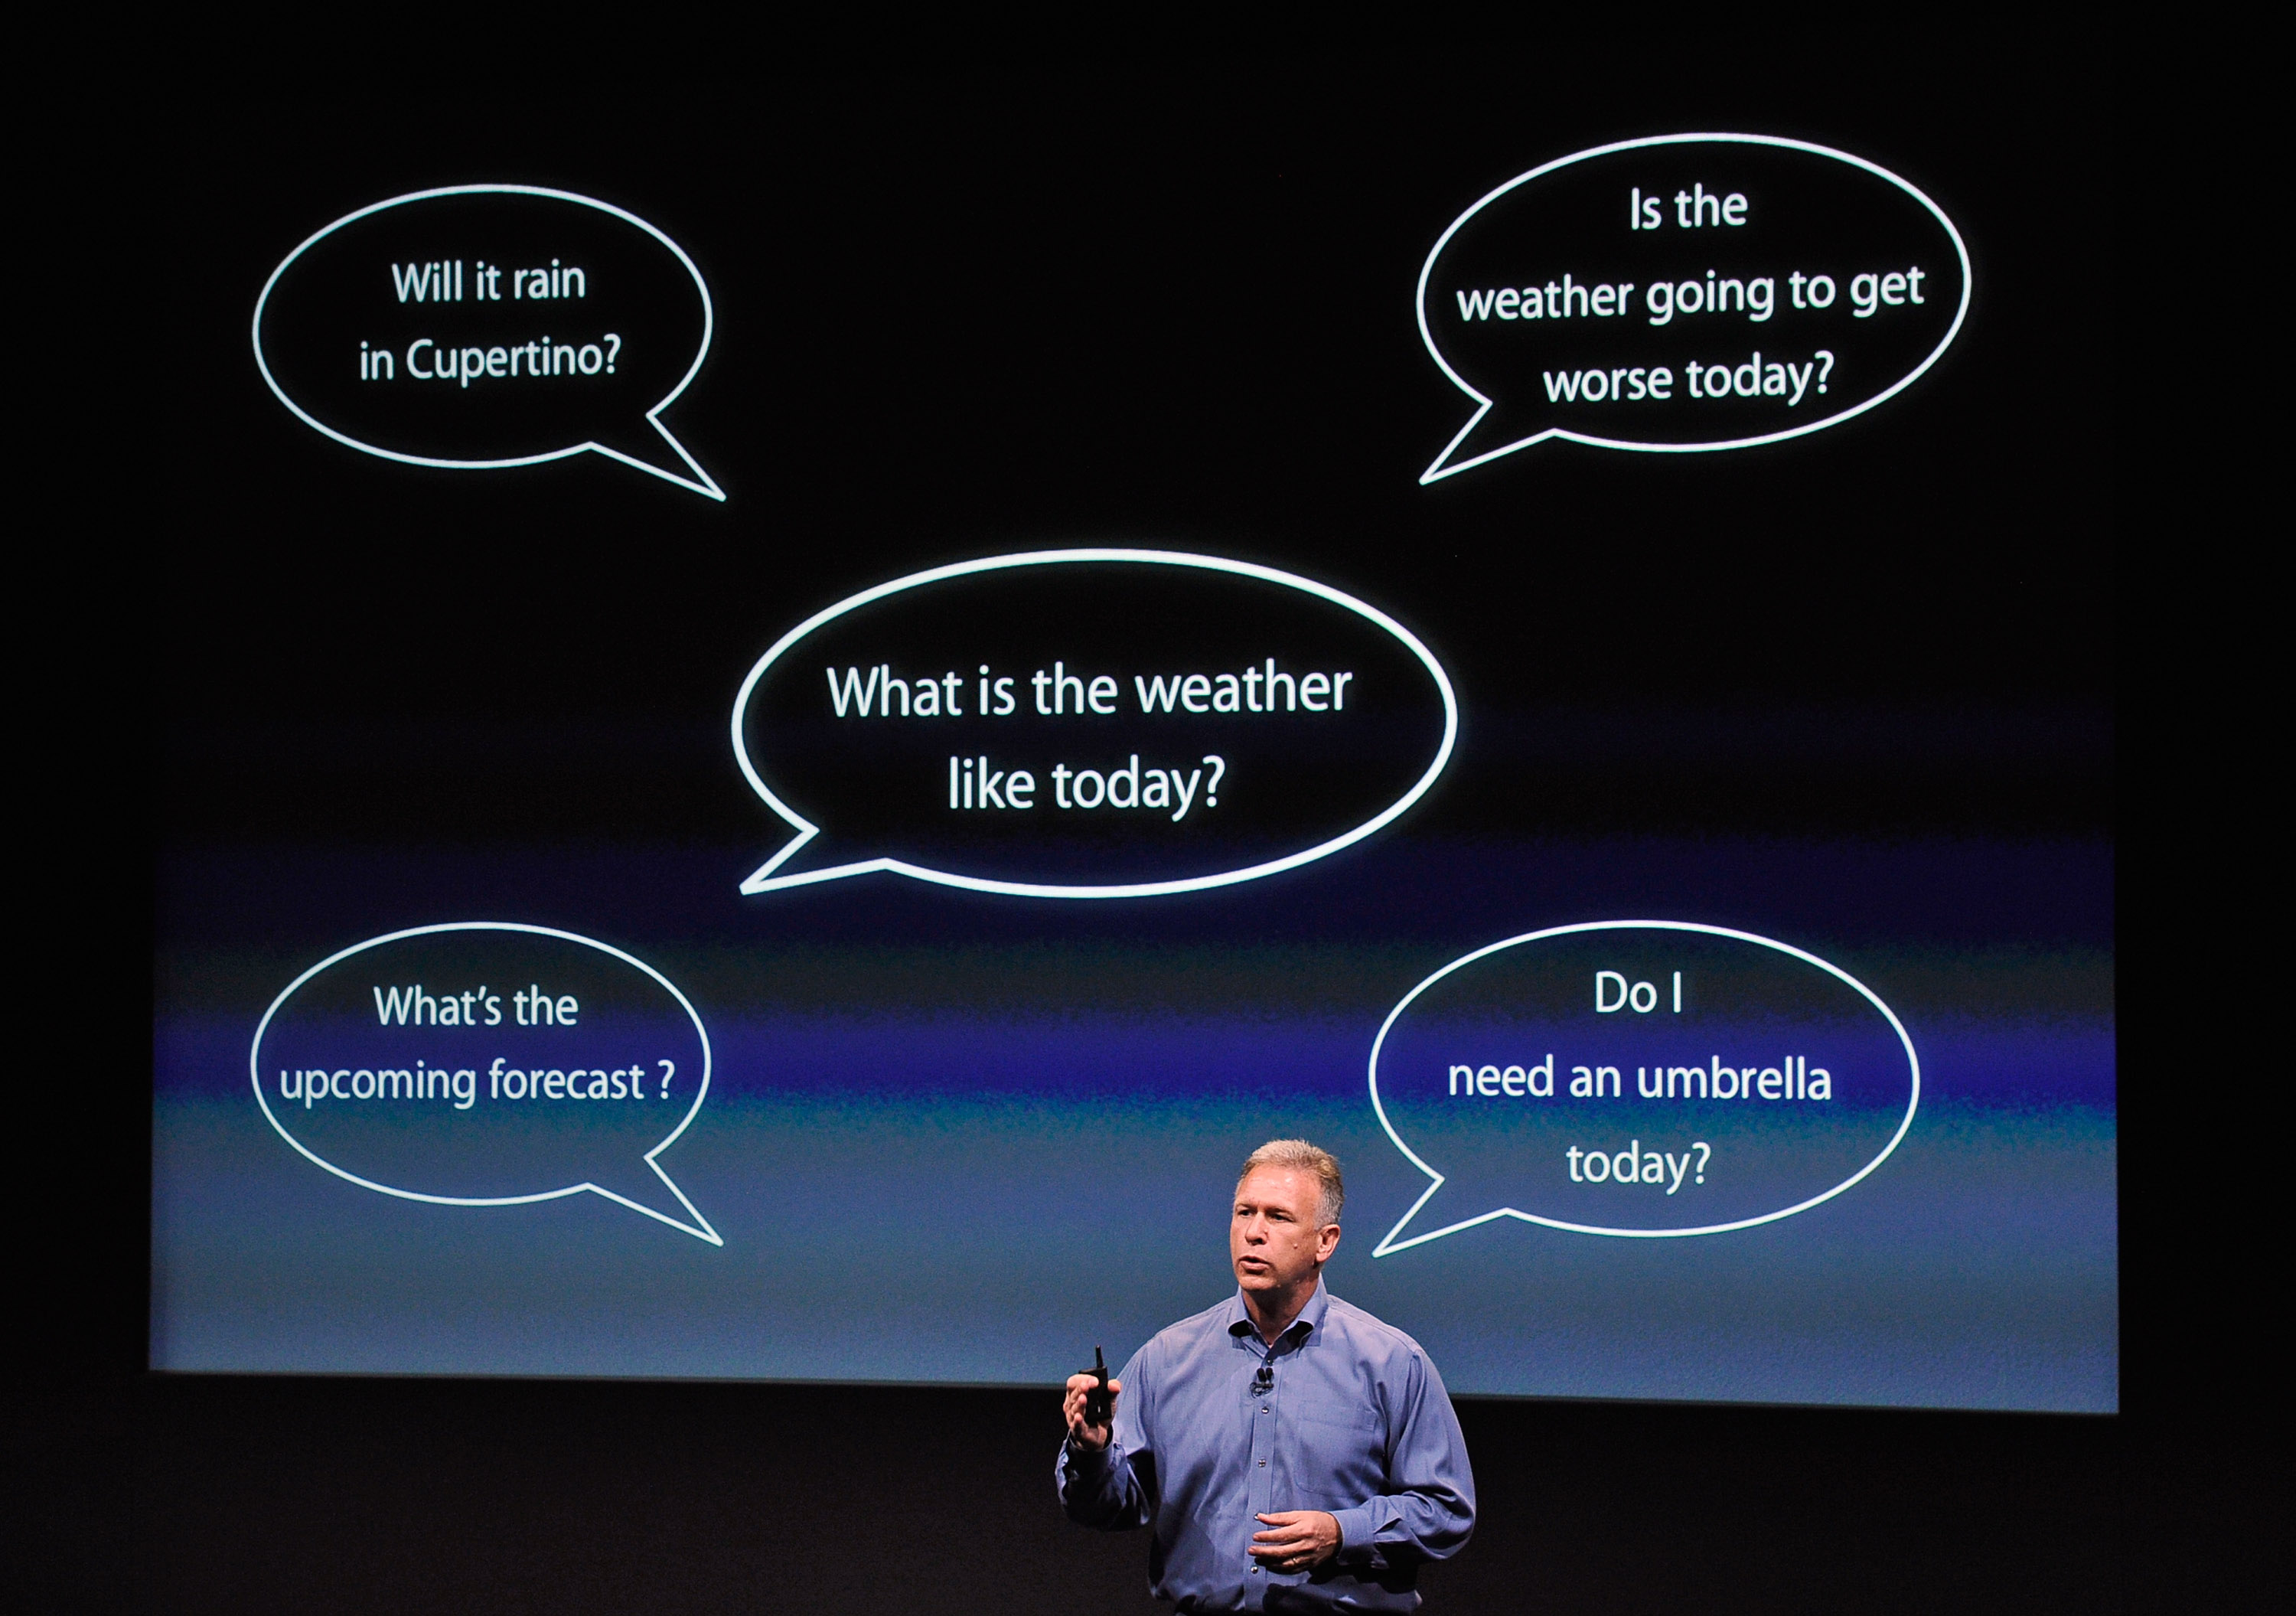 Phil Schiller, Apple's senior vice president of worldwide product marketing, onstage in front of a screen depicting word bubbles.